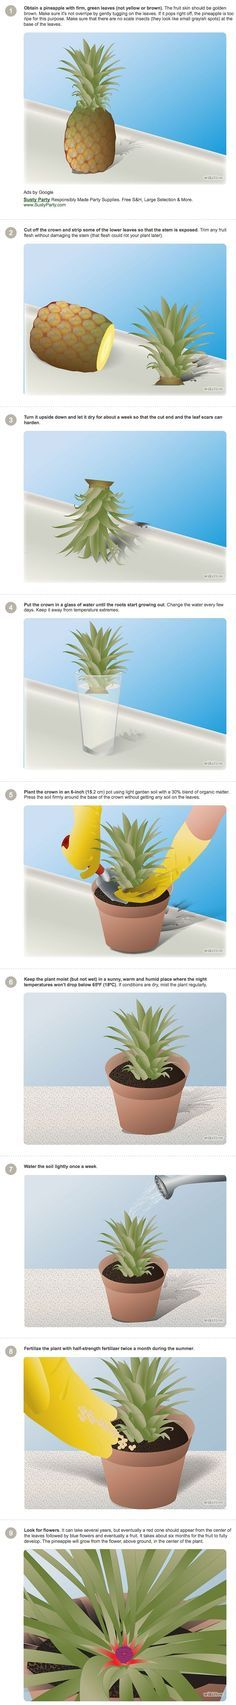 Container Gardening Design Ideas: How to Grow a Pineapple